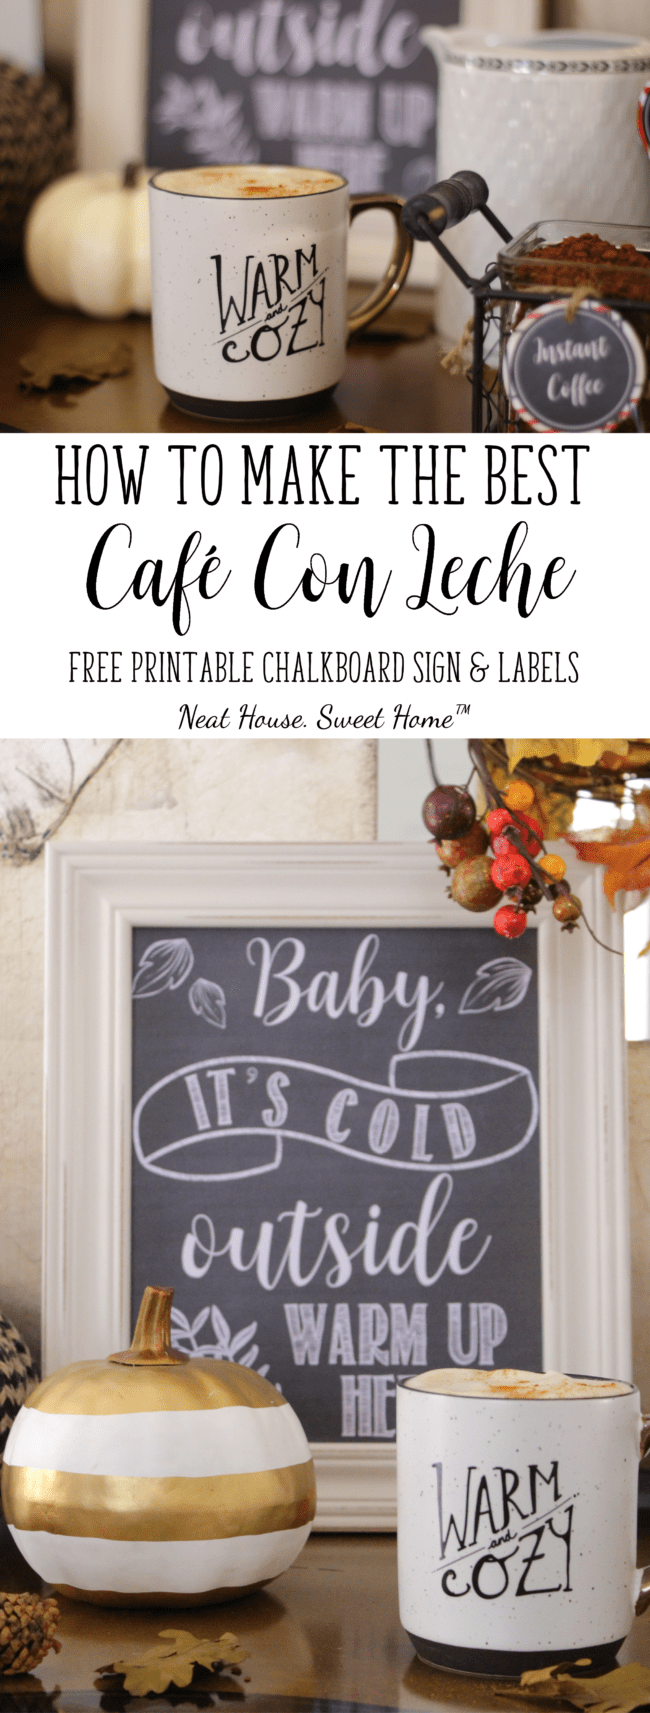 This fall, ditch the overpriced coffee shop and learn how to make cafe con leche that is sweet and creamy. Crush your day with this ridiculously easy recipe. #CupForCrushingIt #sponsored